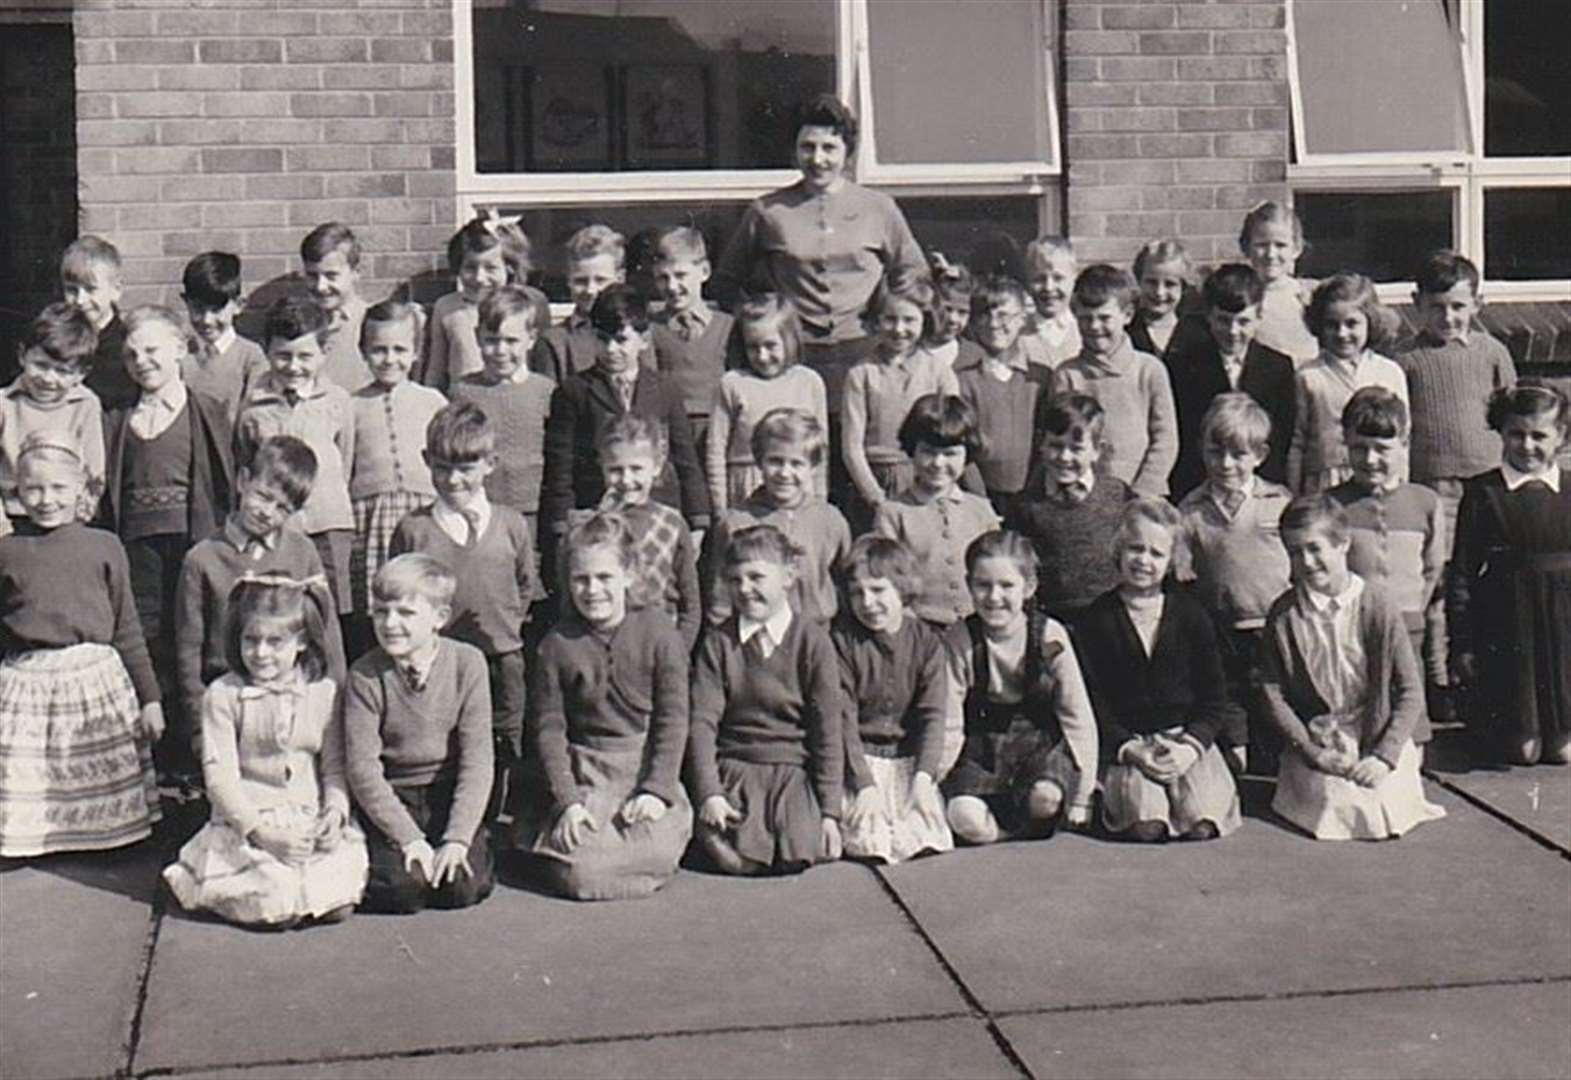 Belton Lane Primary School reunion planned for former pupils of a certain age